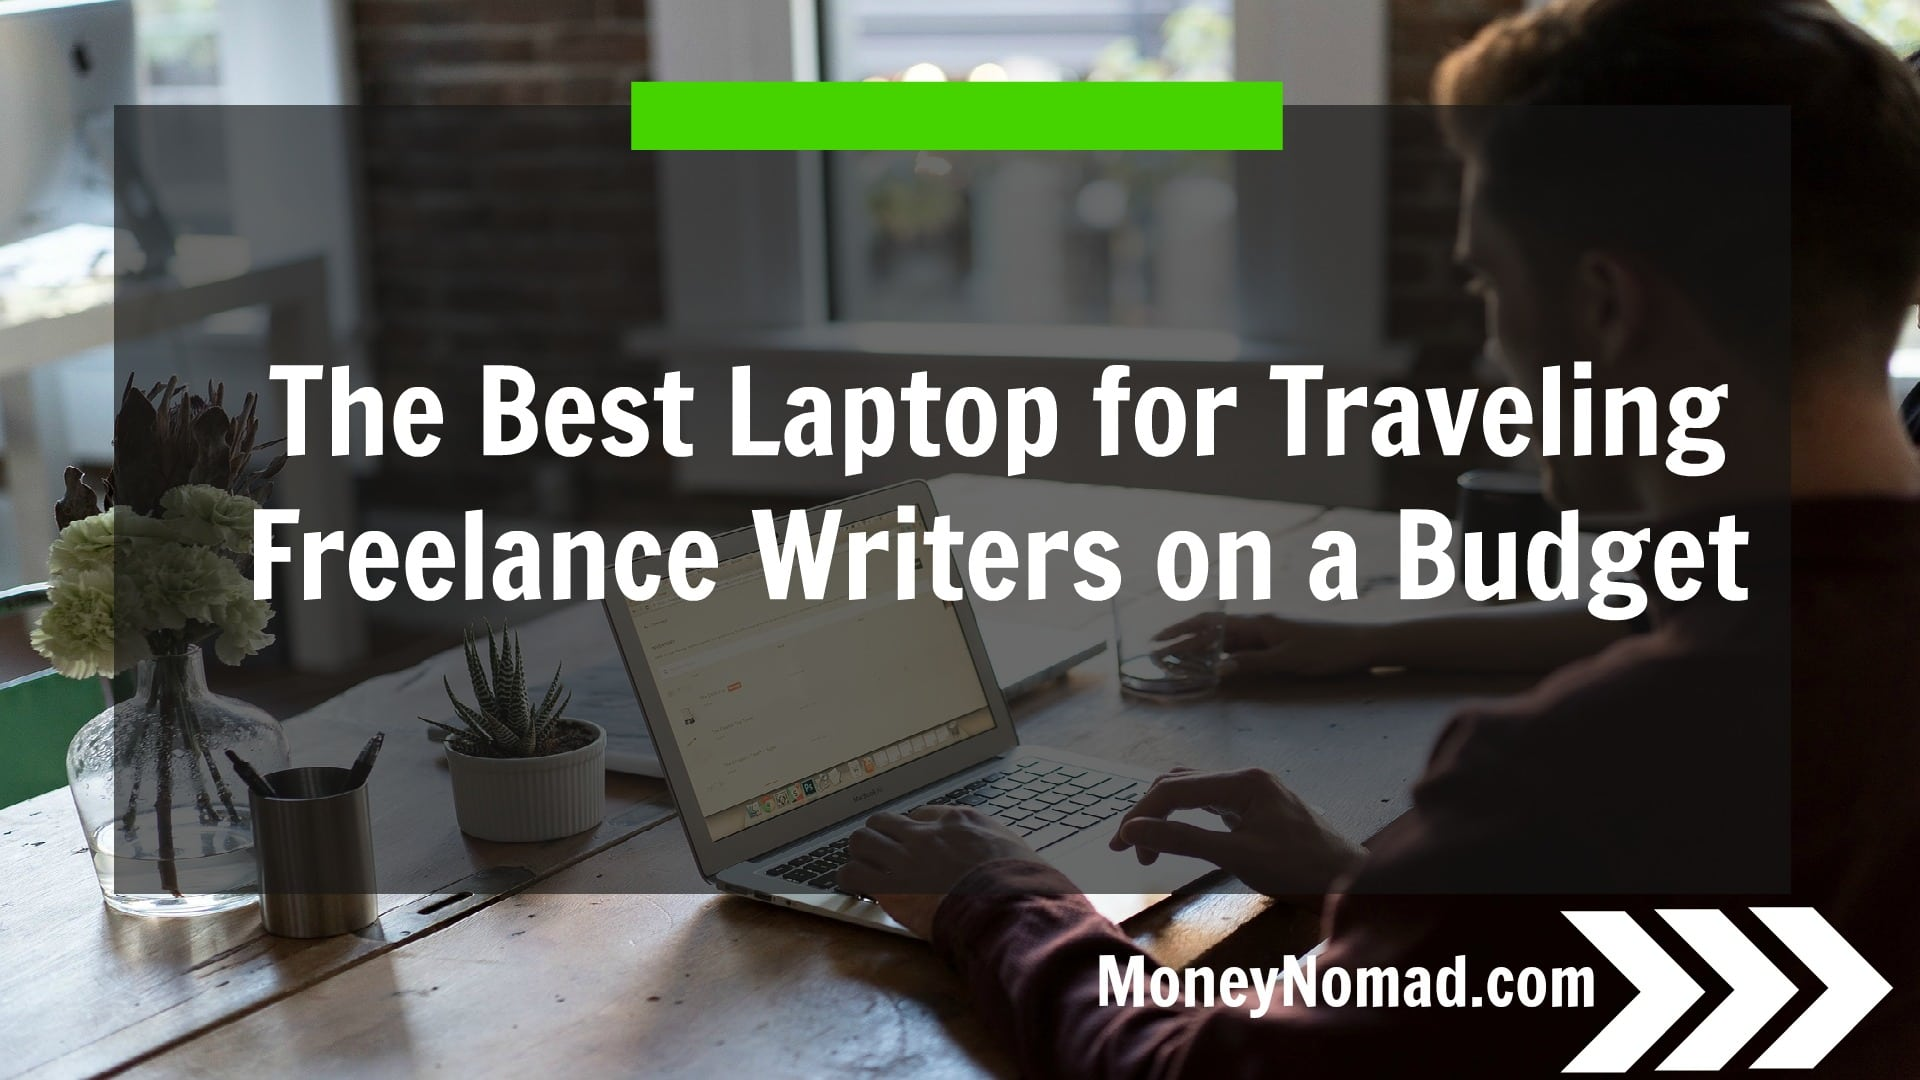 the best laptop for traveling lance writers on a budget the best laptop for traveling lance writers on a budget under 300 money nomad